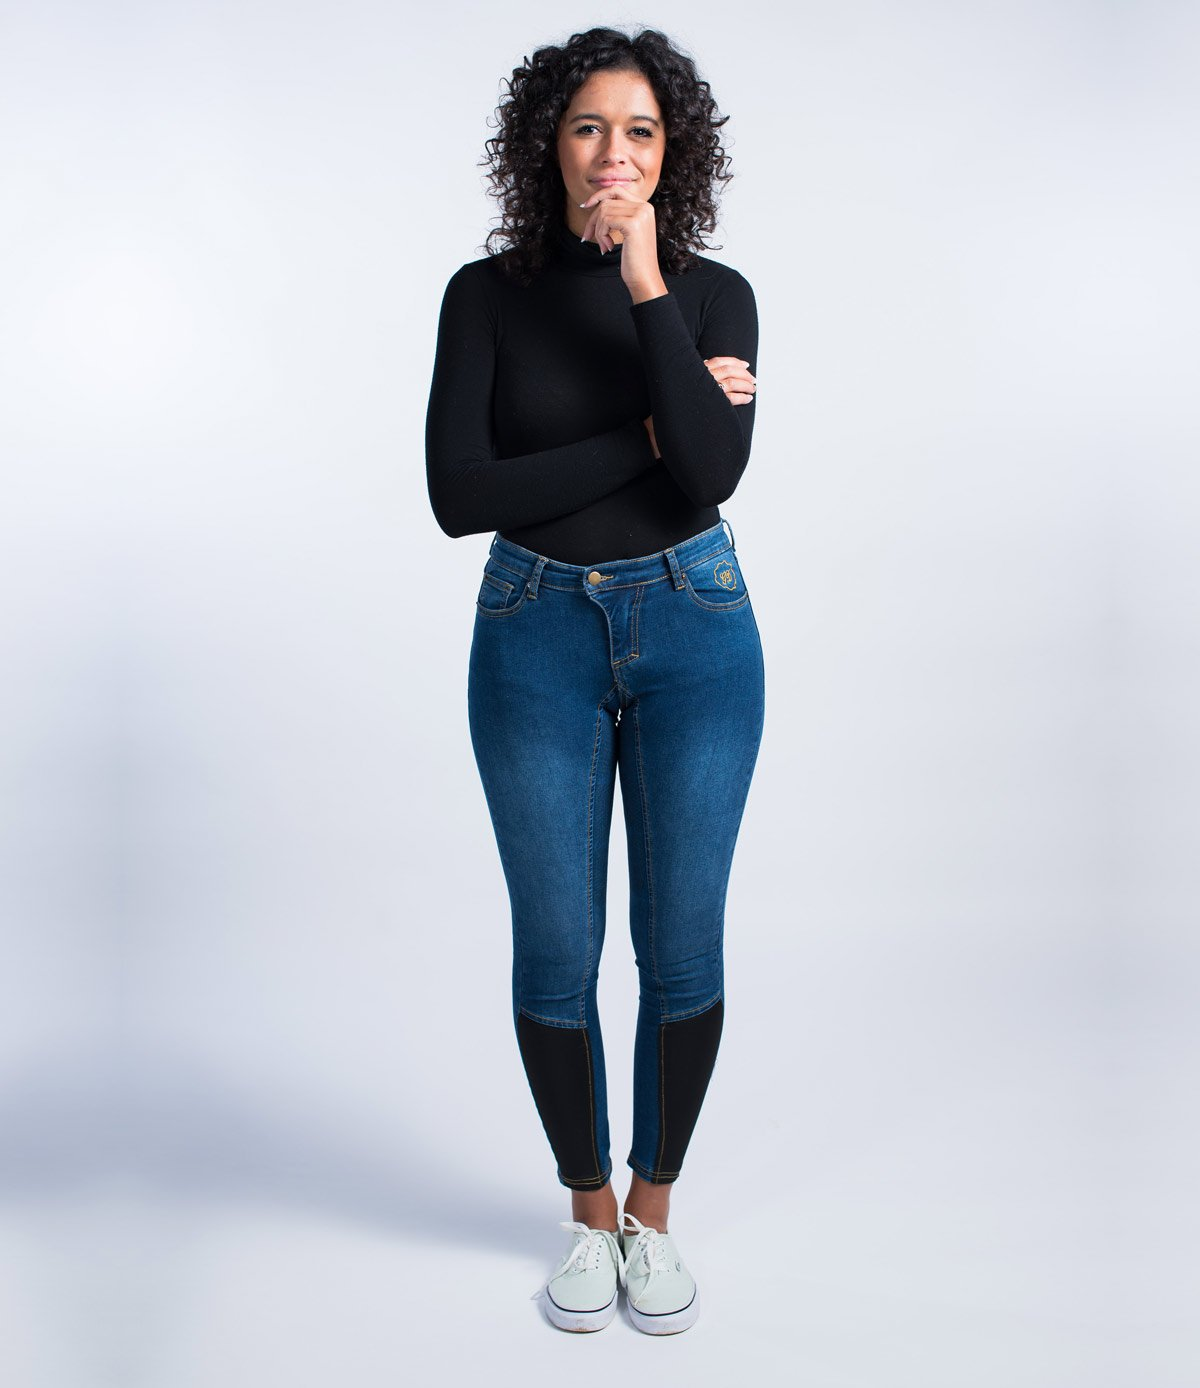 georgian dollar equestrian jeans breeches